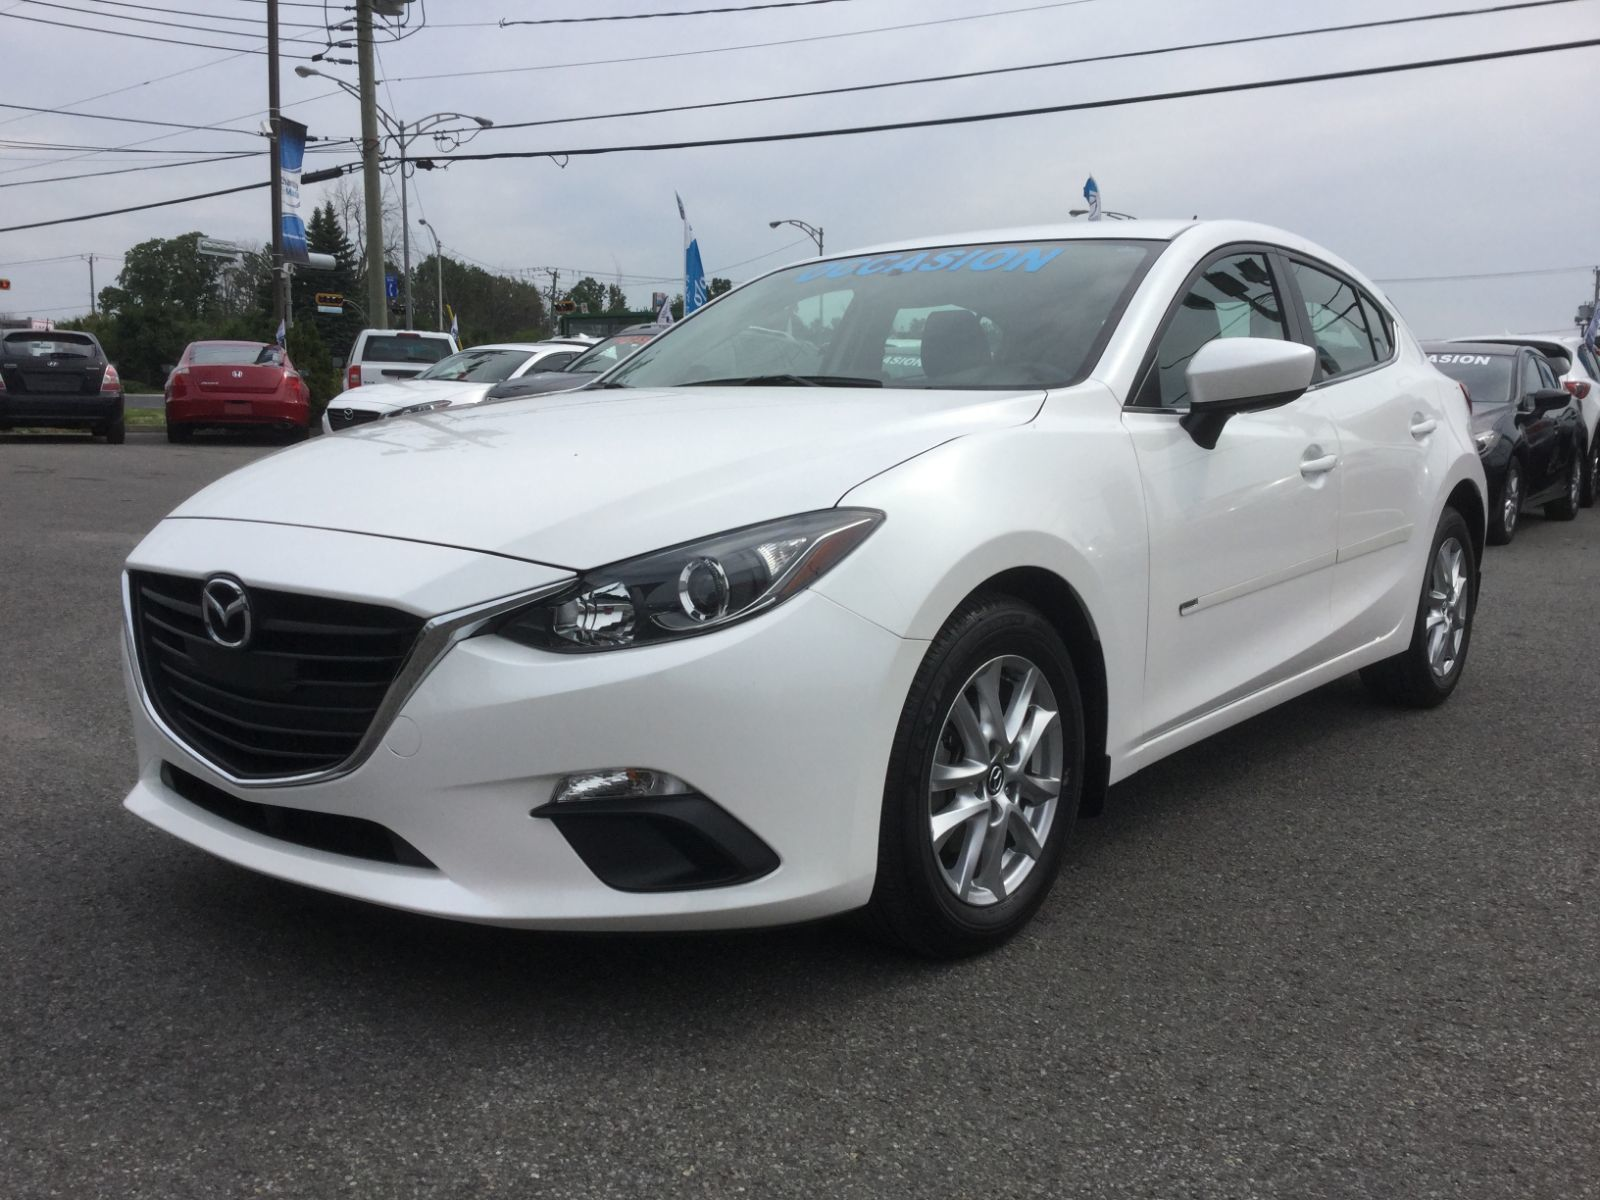 Mazda 3 Service Manual: Power Outer Mirror Switch Inspection